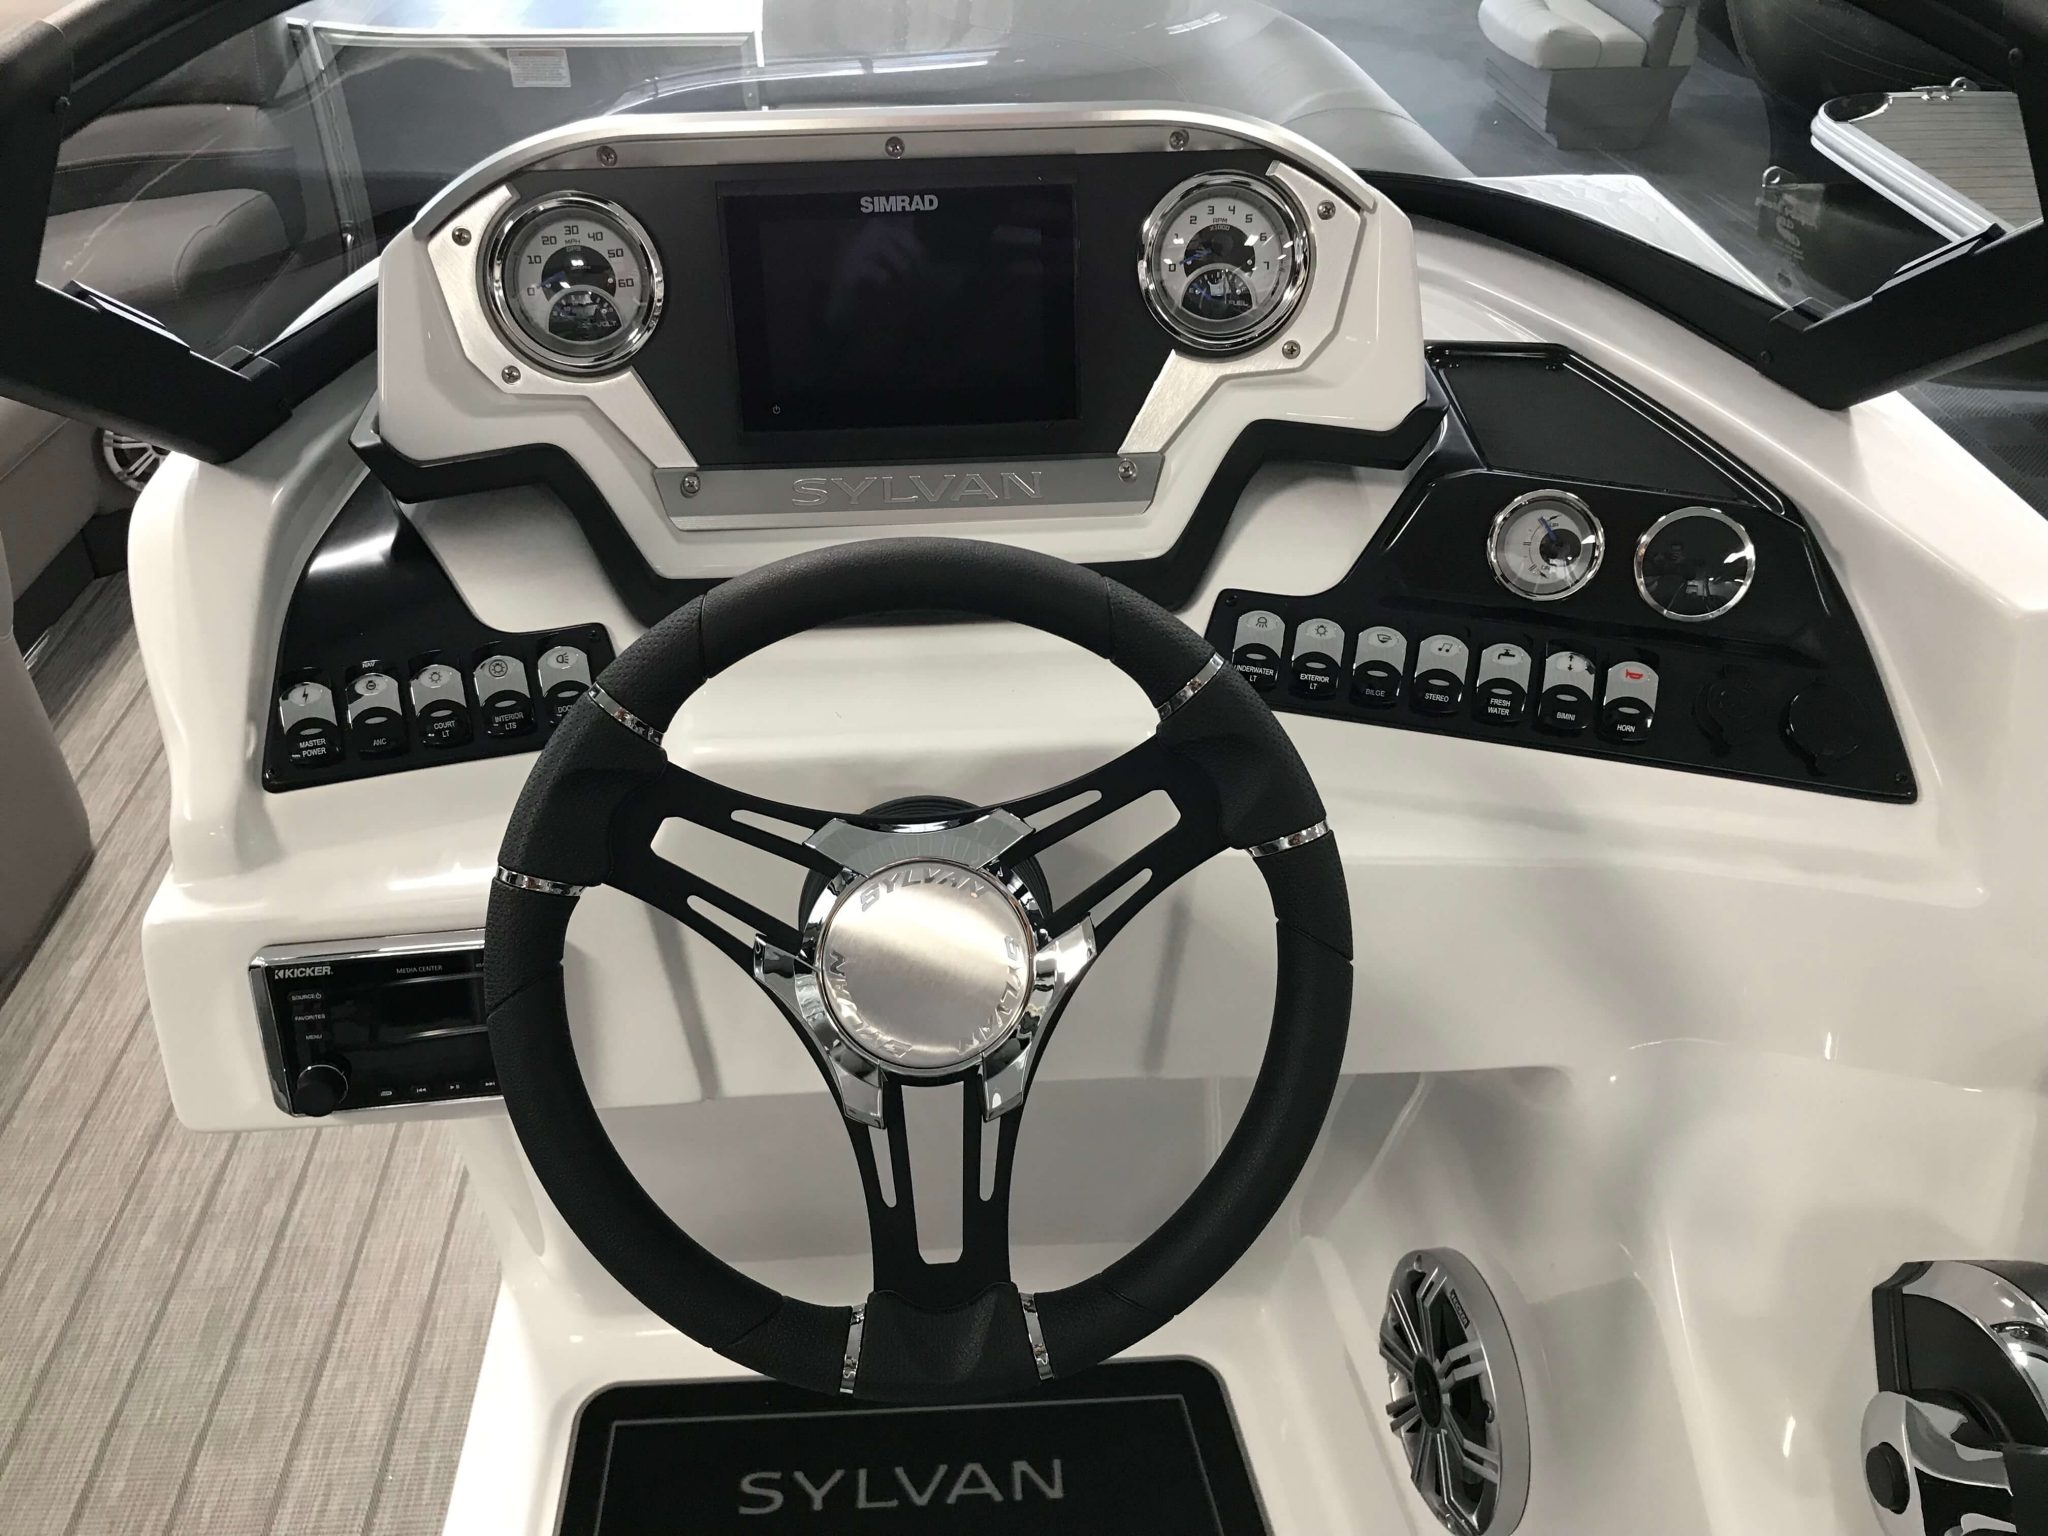 2019 Sylvan S3 LZ Tritoon Helm And Dash 2